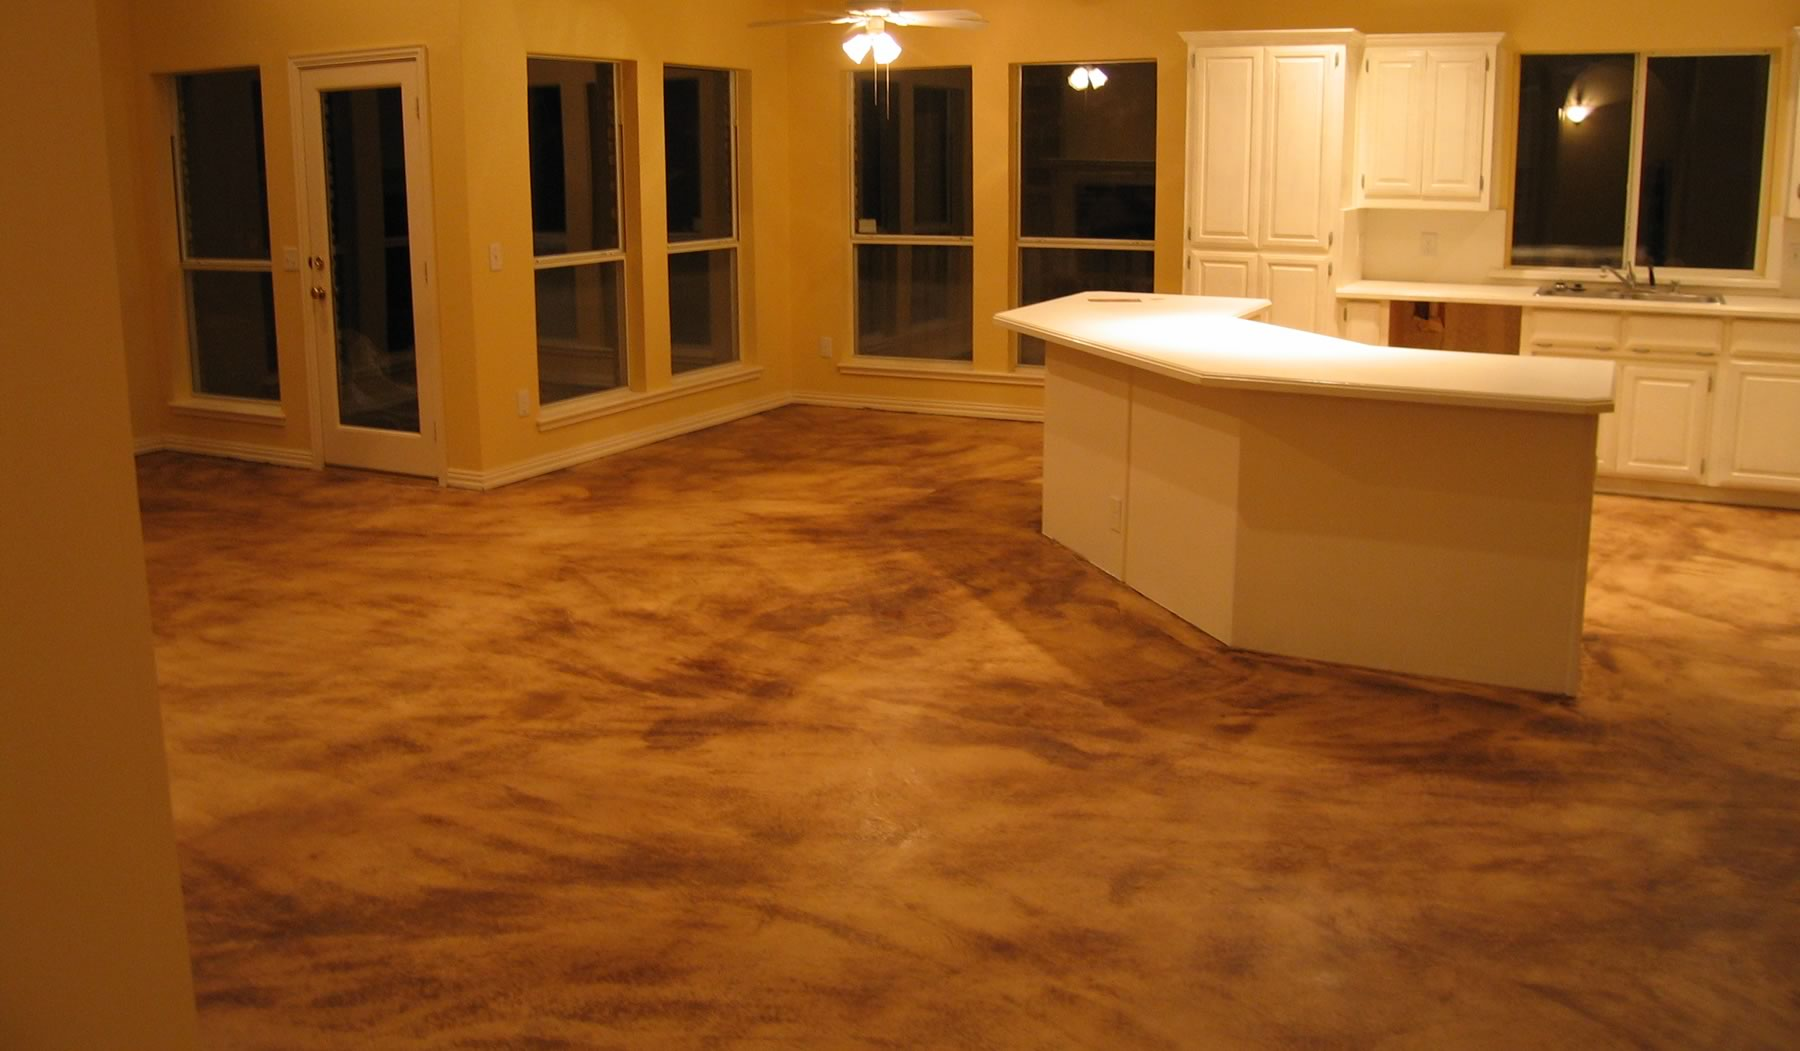 Interior Concrete Floor and Indoor Concrete Paint